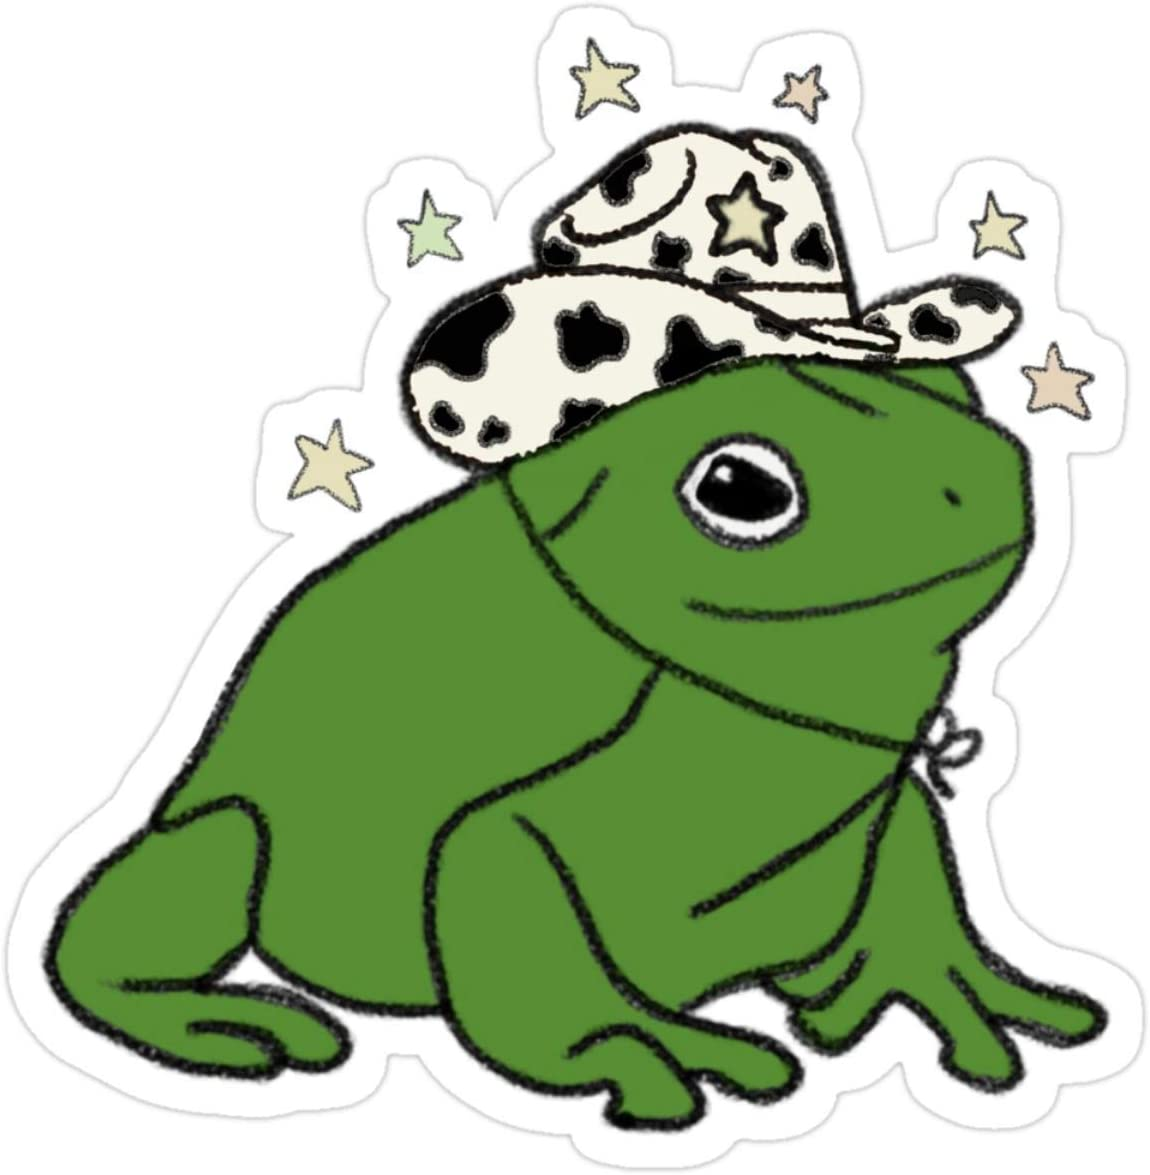 Stickers Frog with A Cowboy Hat Laptop Decals (3 Pcs/Pack) 3x4 Inch Bag Backpack